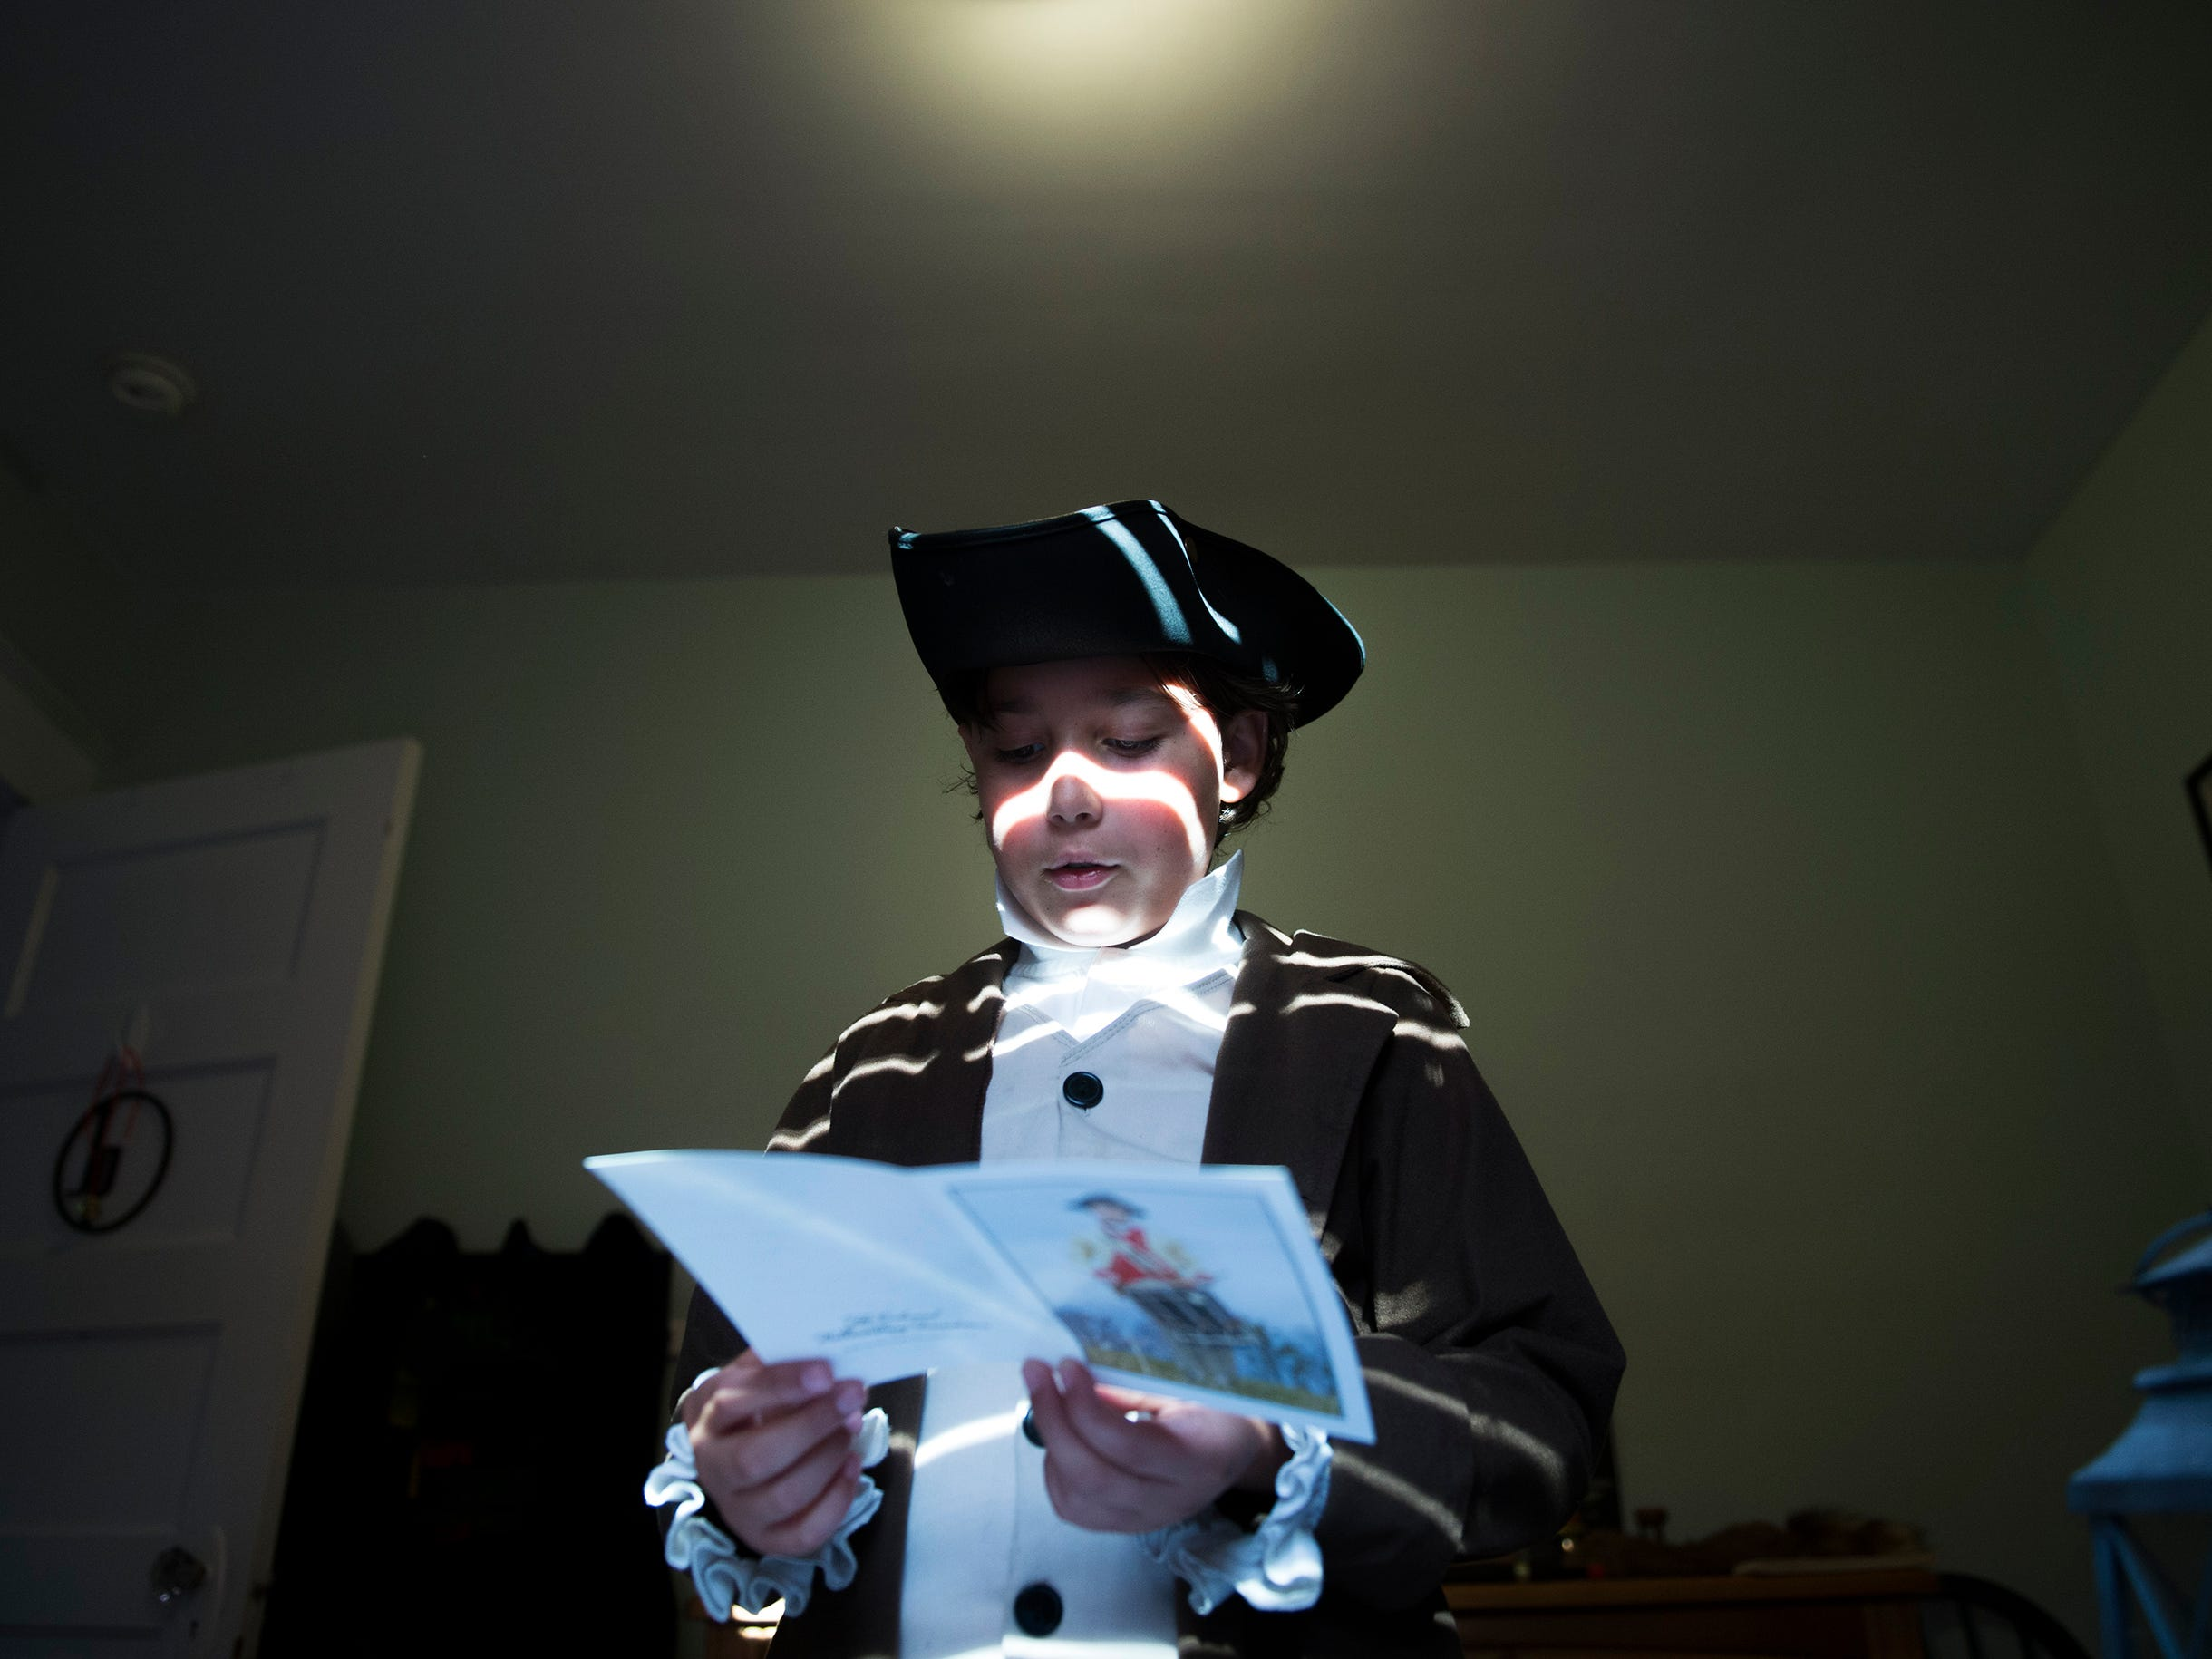 Colonial history buff Joseph Gentile, 9, reads in his bedroom Thursday, Aug. 9, 2018 in Haddon Heights, N.J.